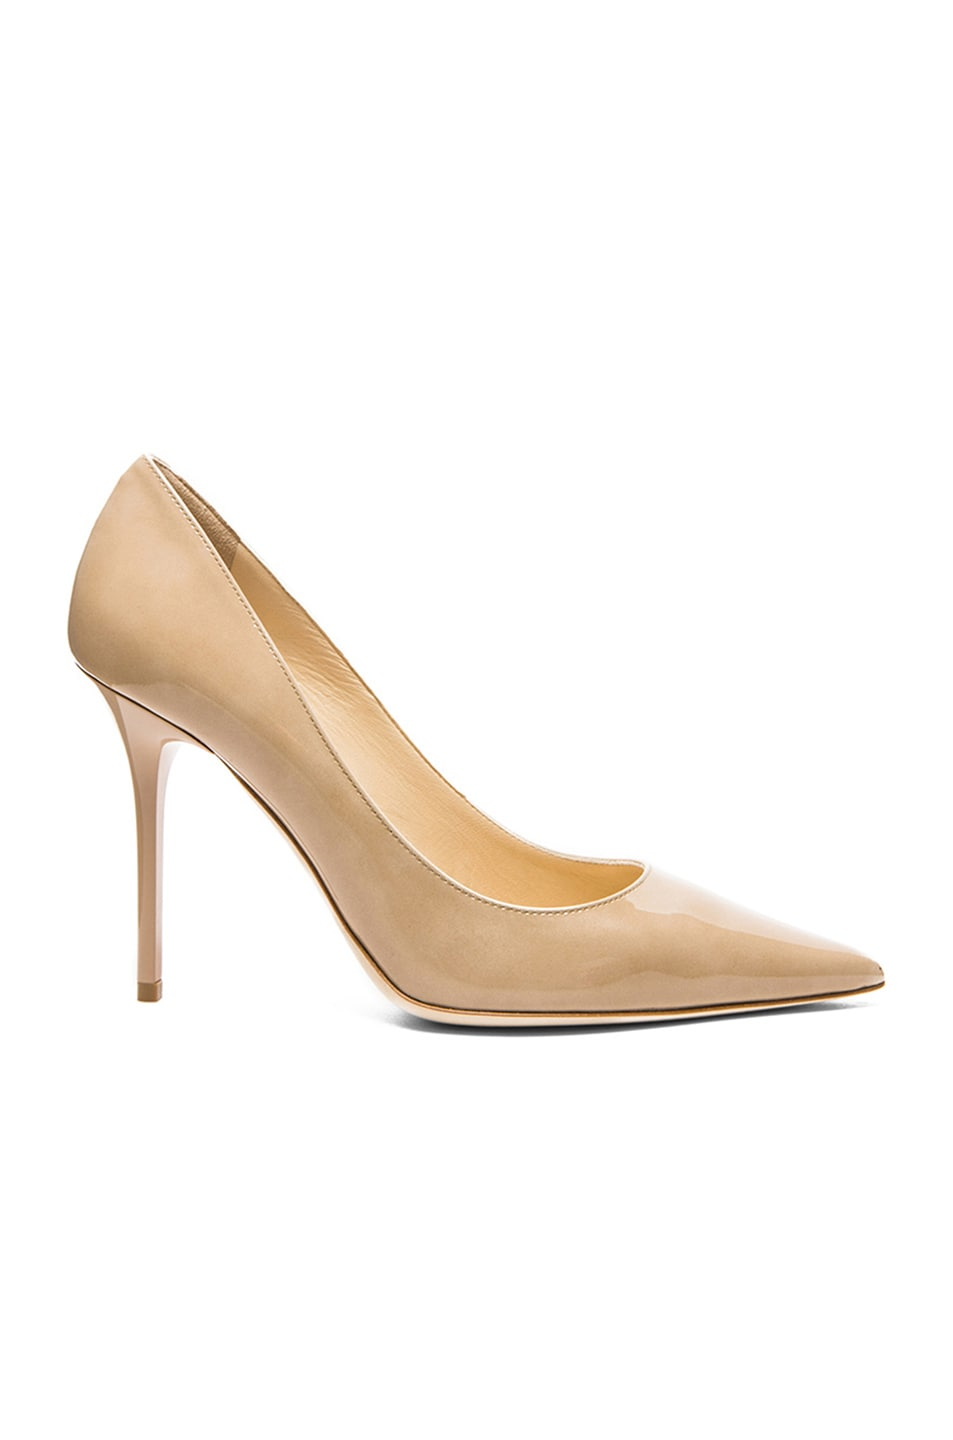 Image 1 of Jimmy Choo Abel Pointed Patent Leather Pumps in Nude